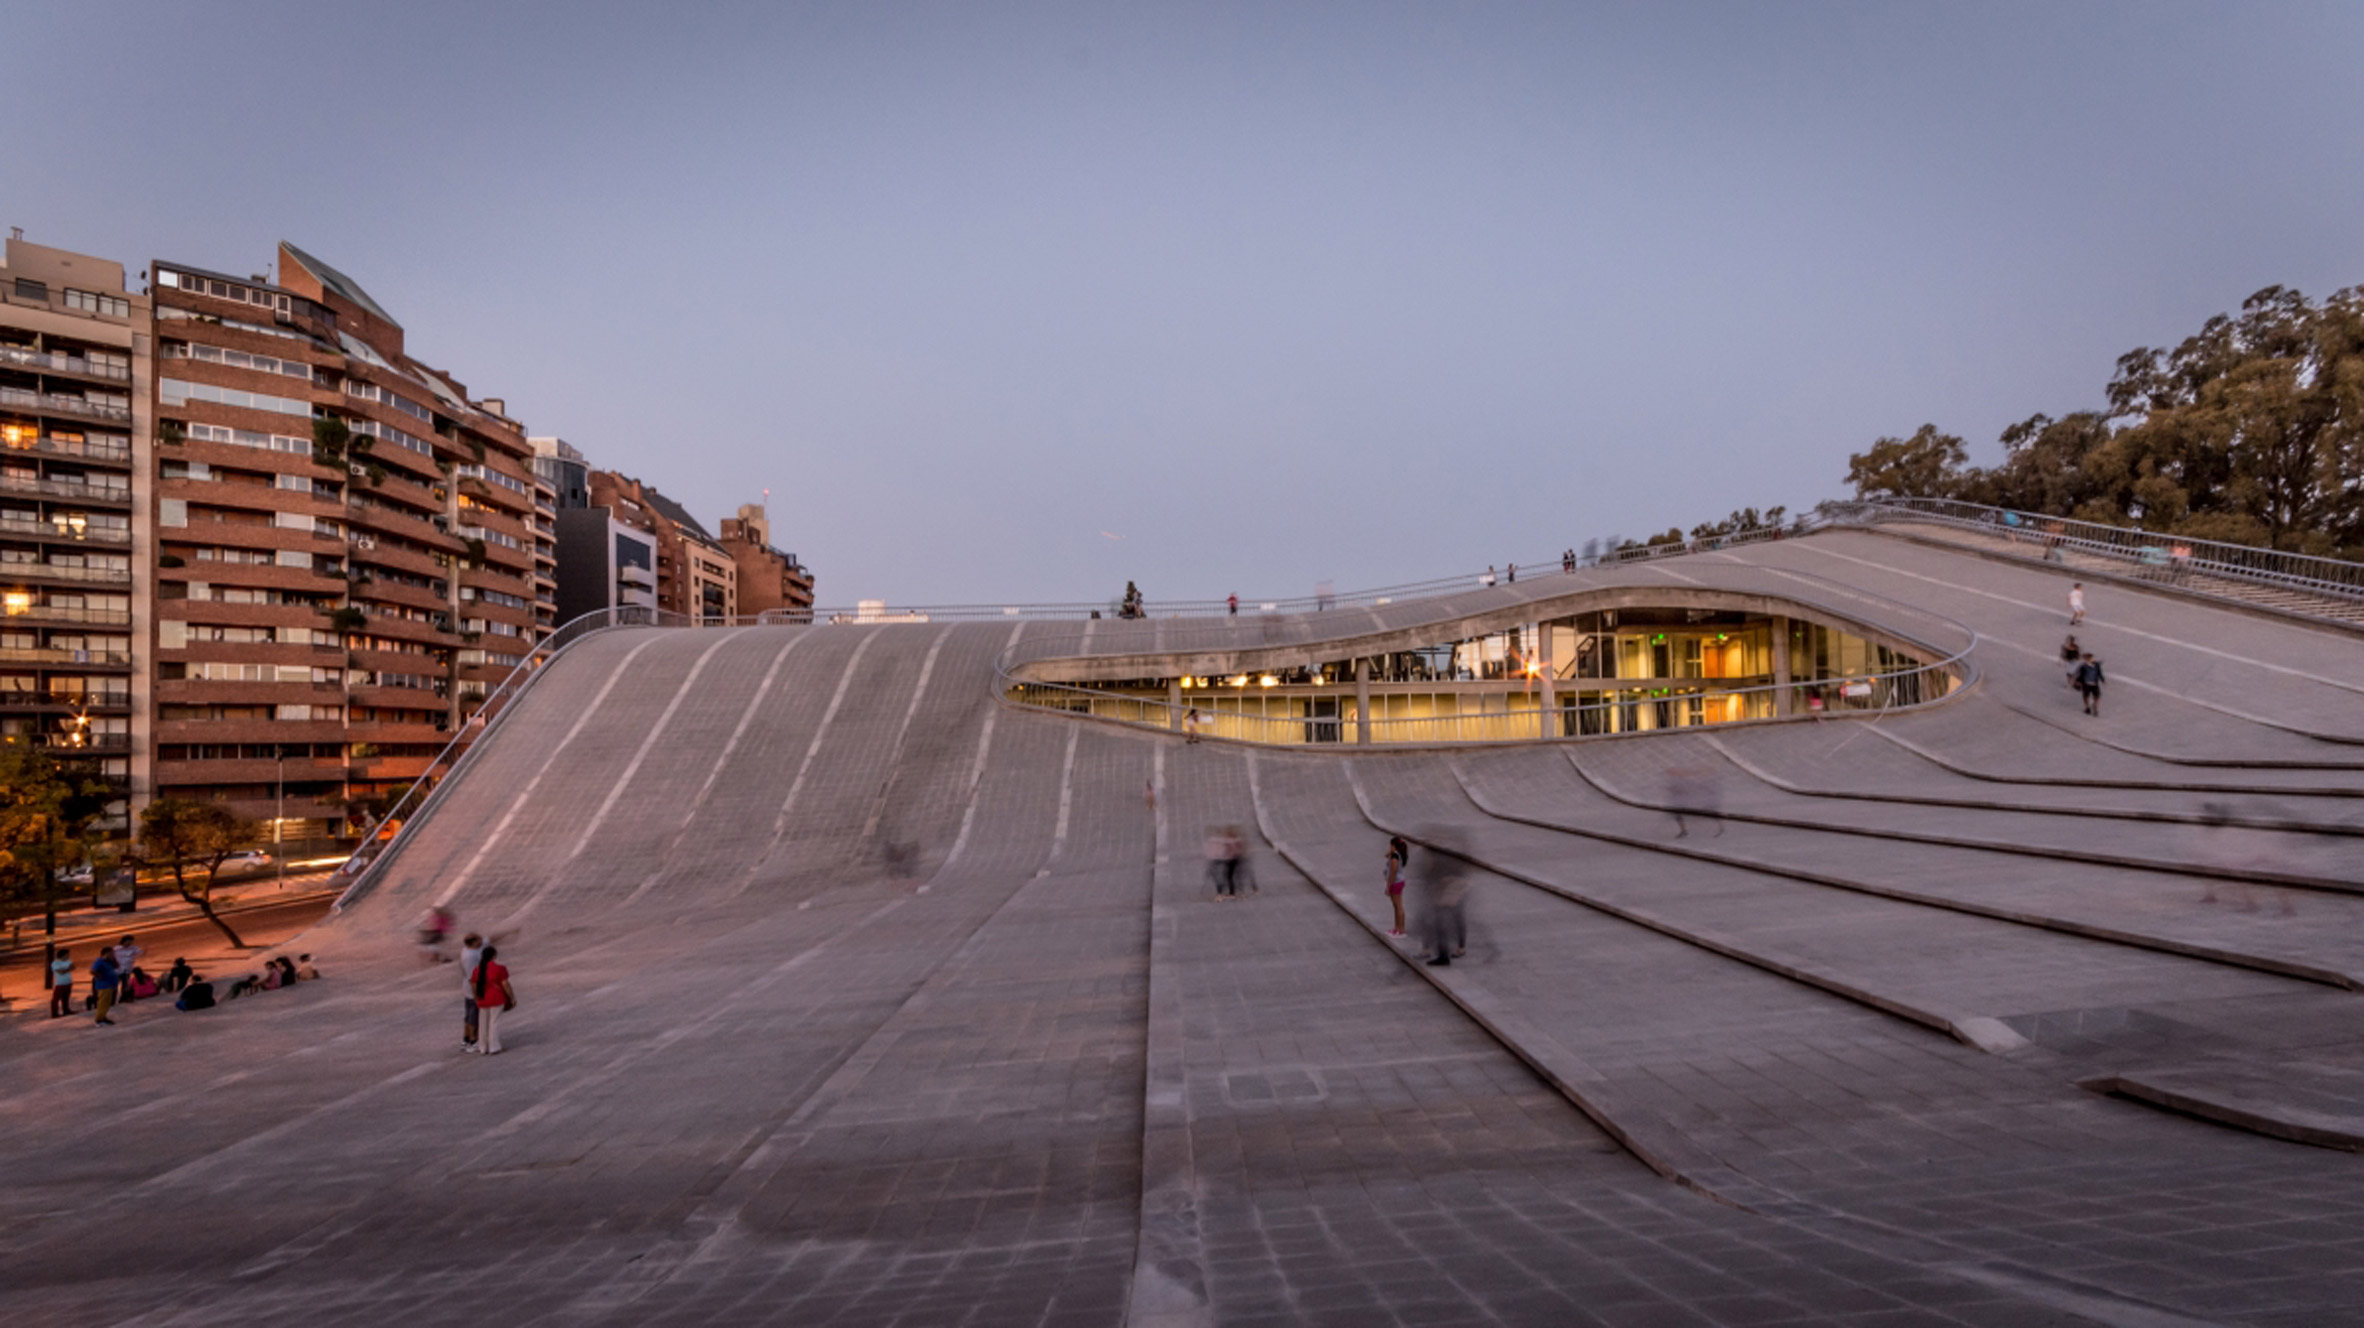 Córdoba Cultural Centre features an undulating roof that people can walk across